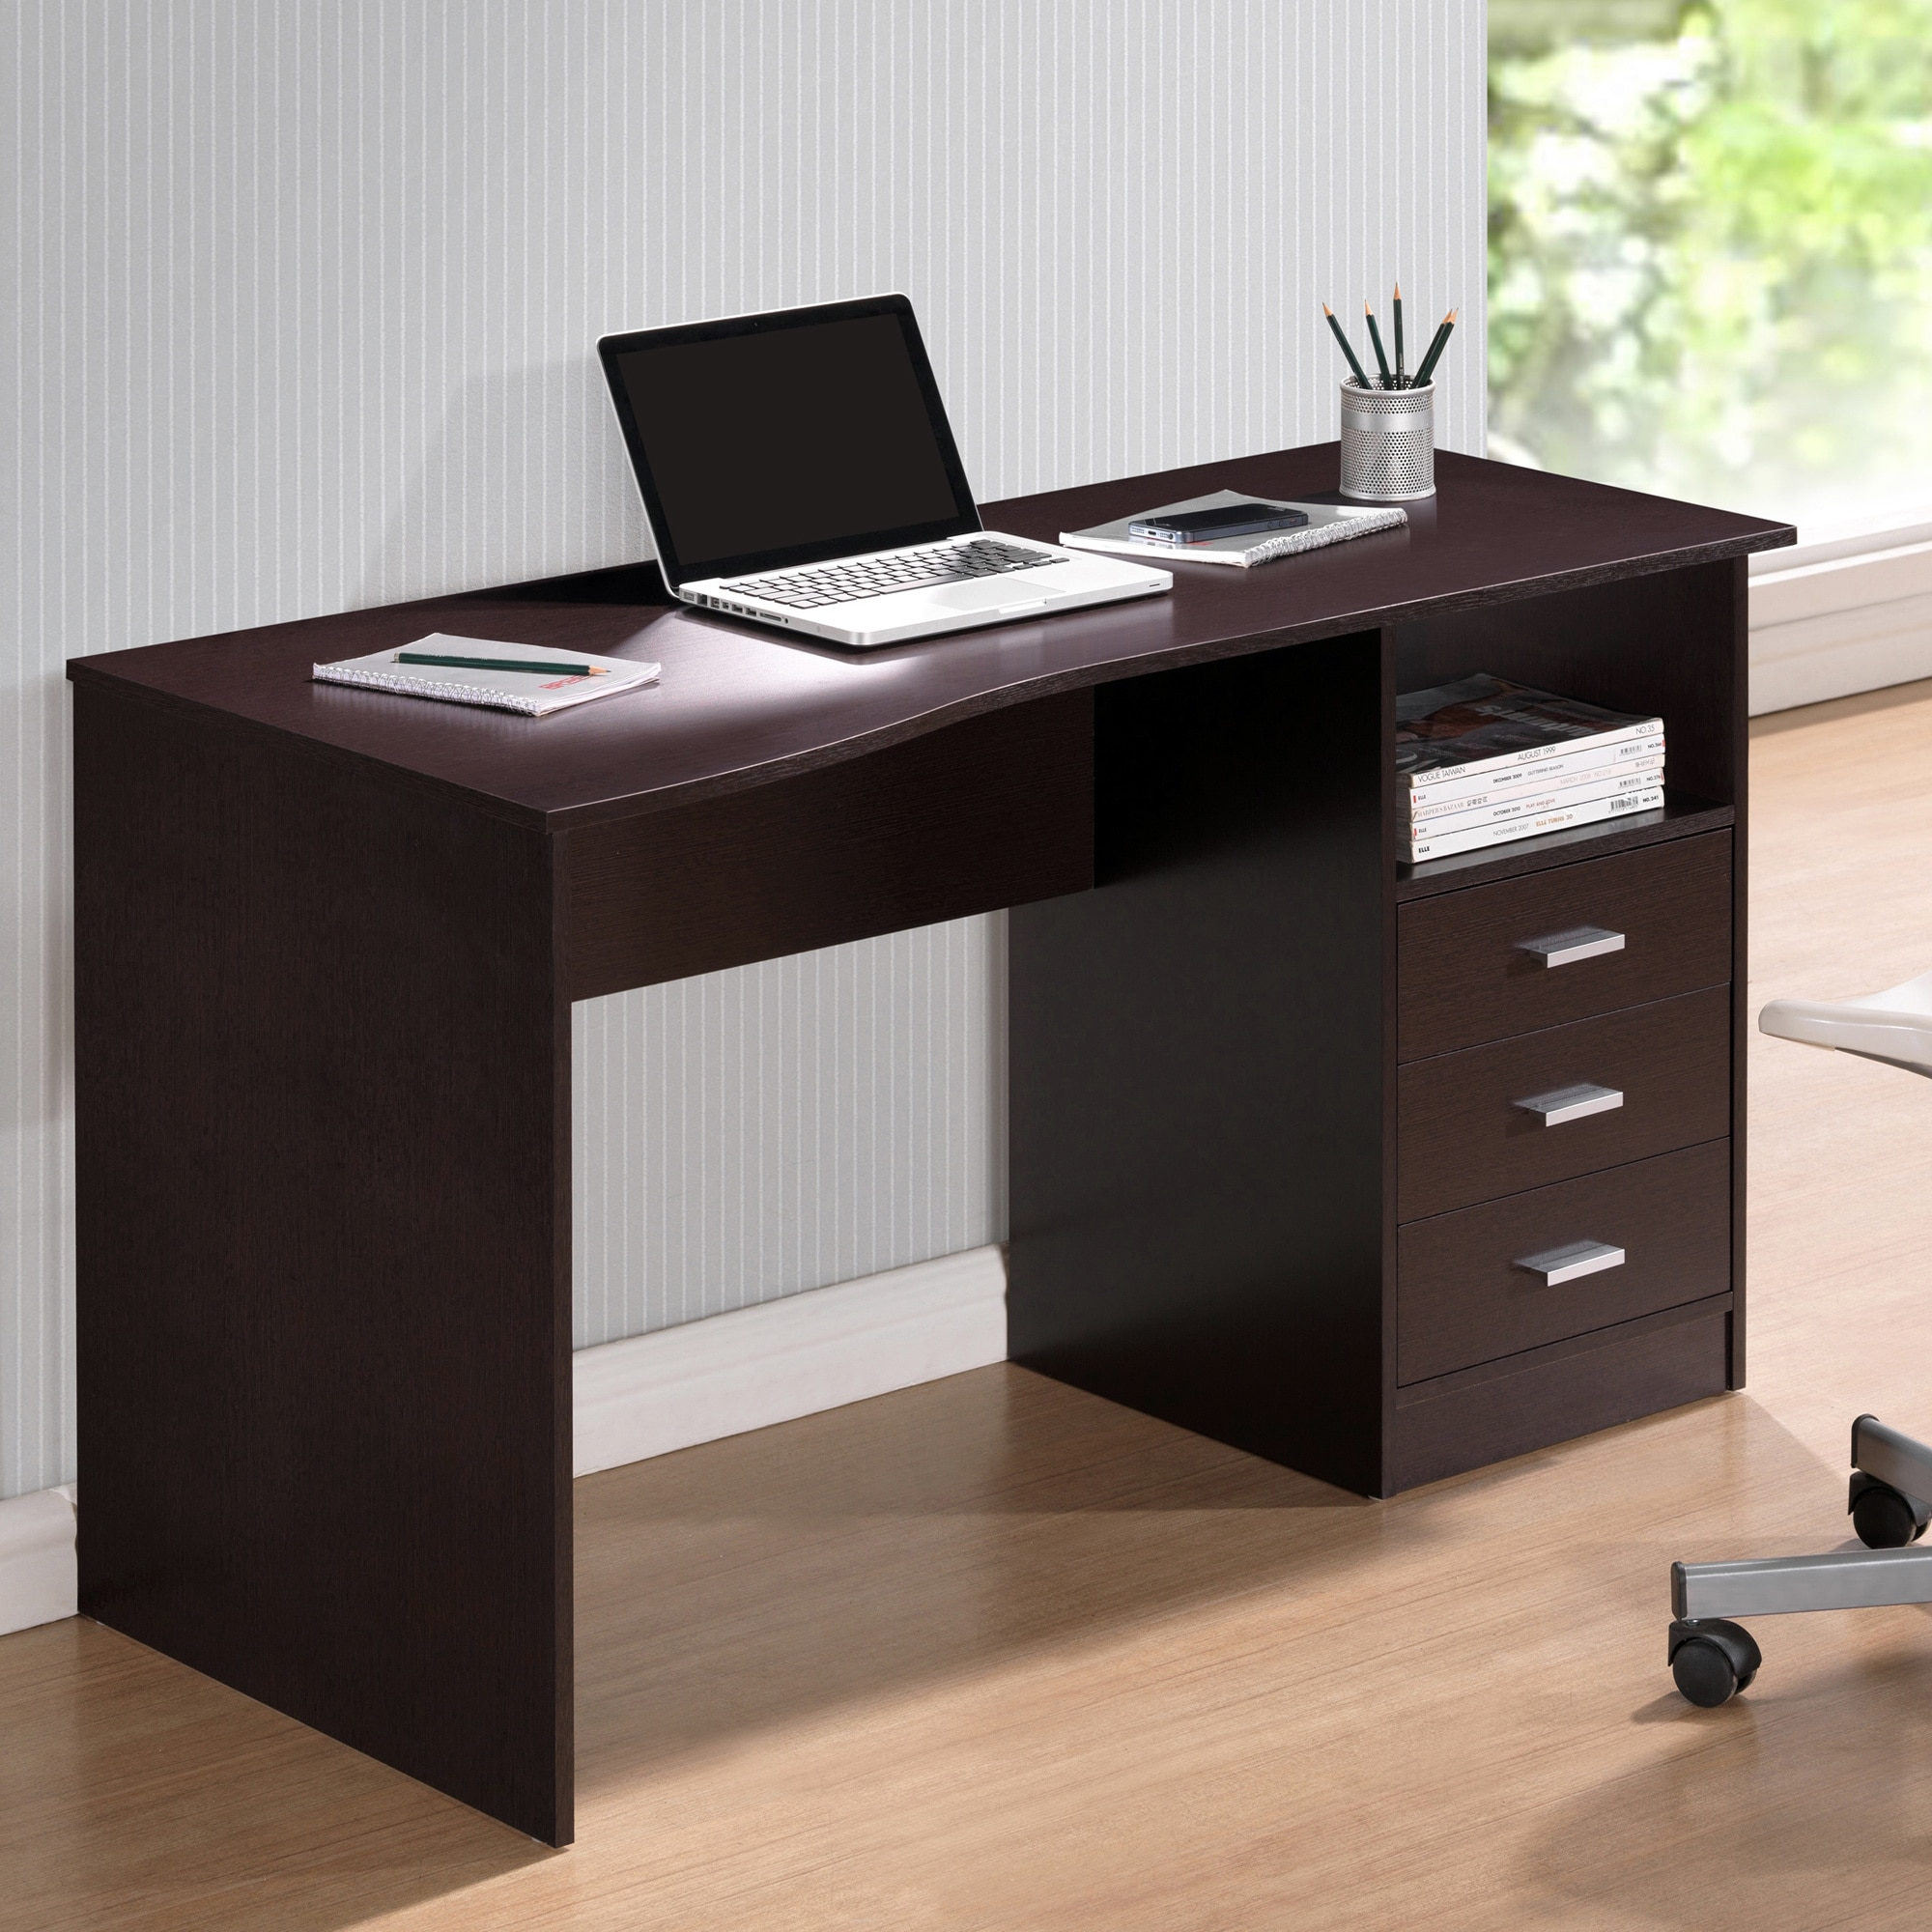 laura products drawers oak shelves desk background with white drawer james